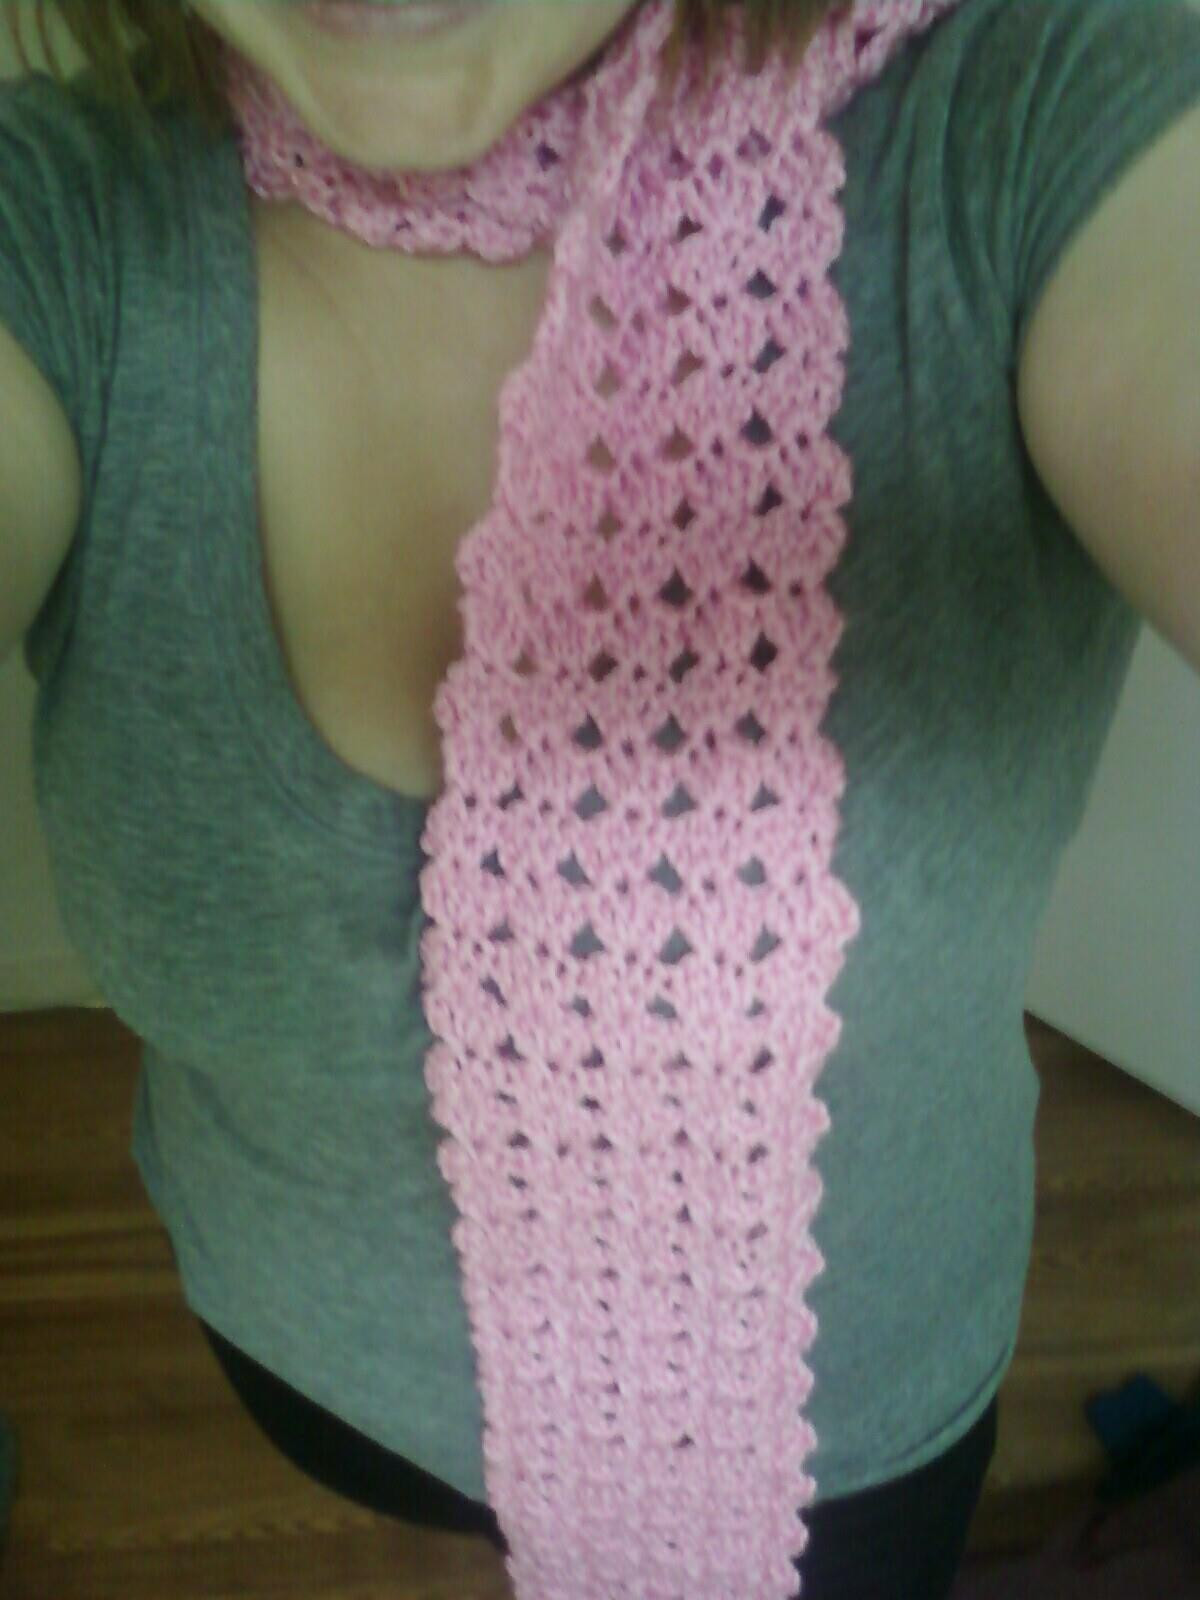 Easy Crochet Scarf Patterns Awesome Crochet Chiq Shell Stitch Scarf Of Attractive 42 Ideas Easy Crochet Scarf Patterns